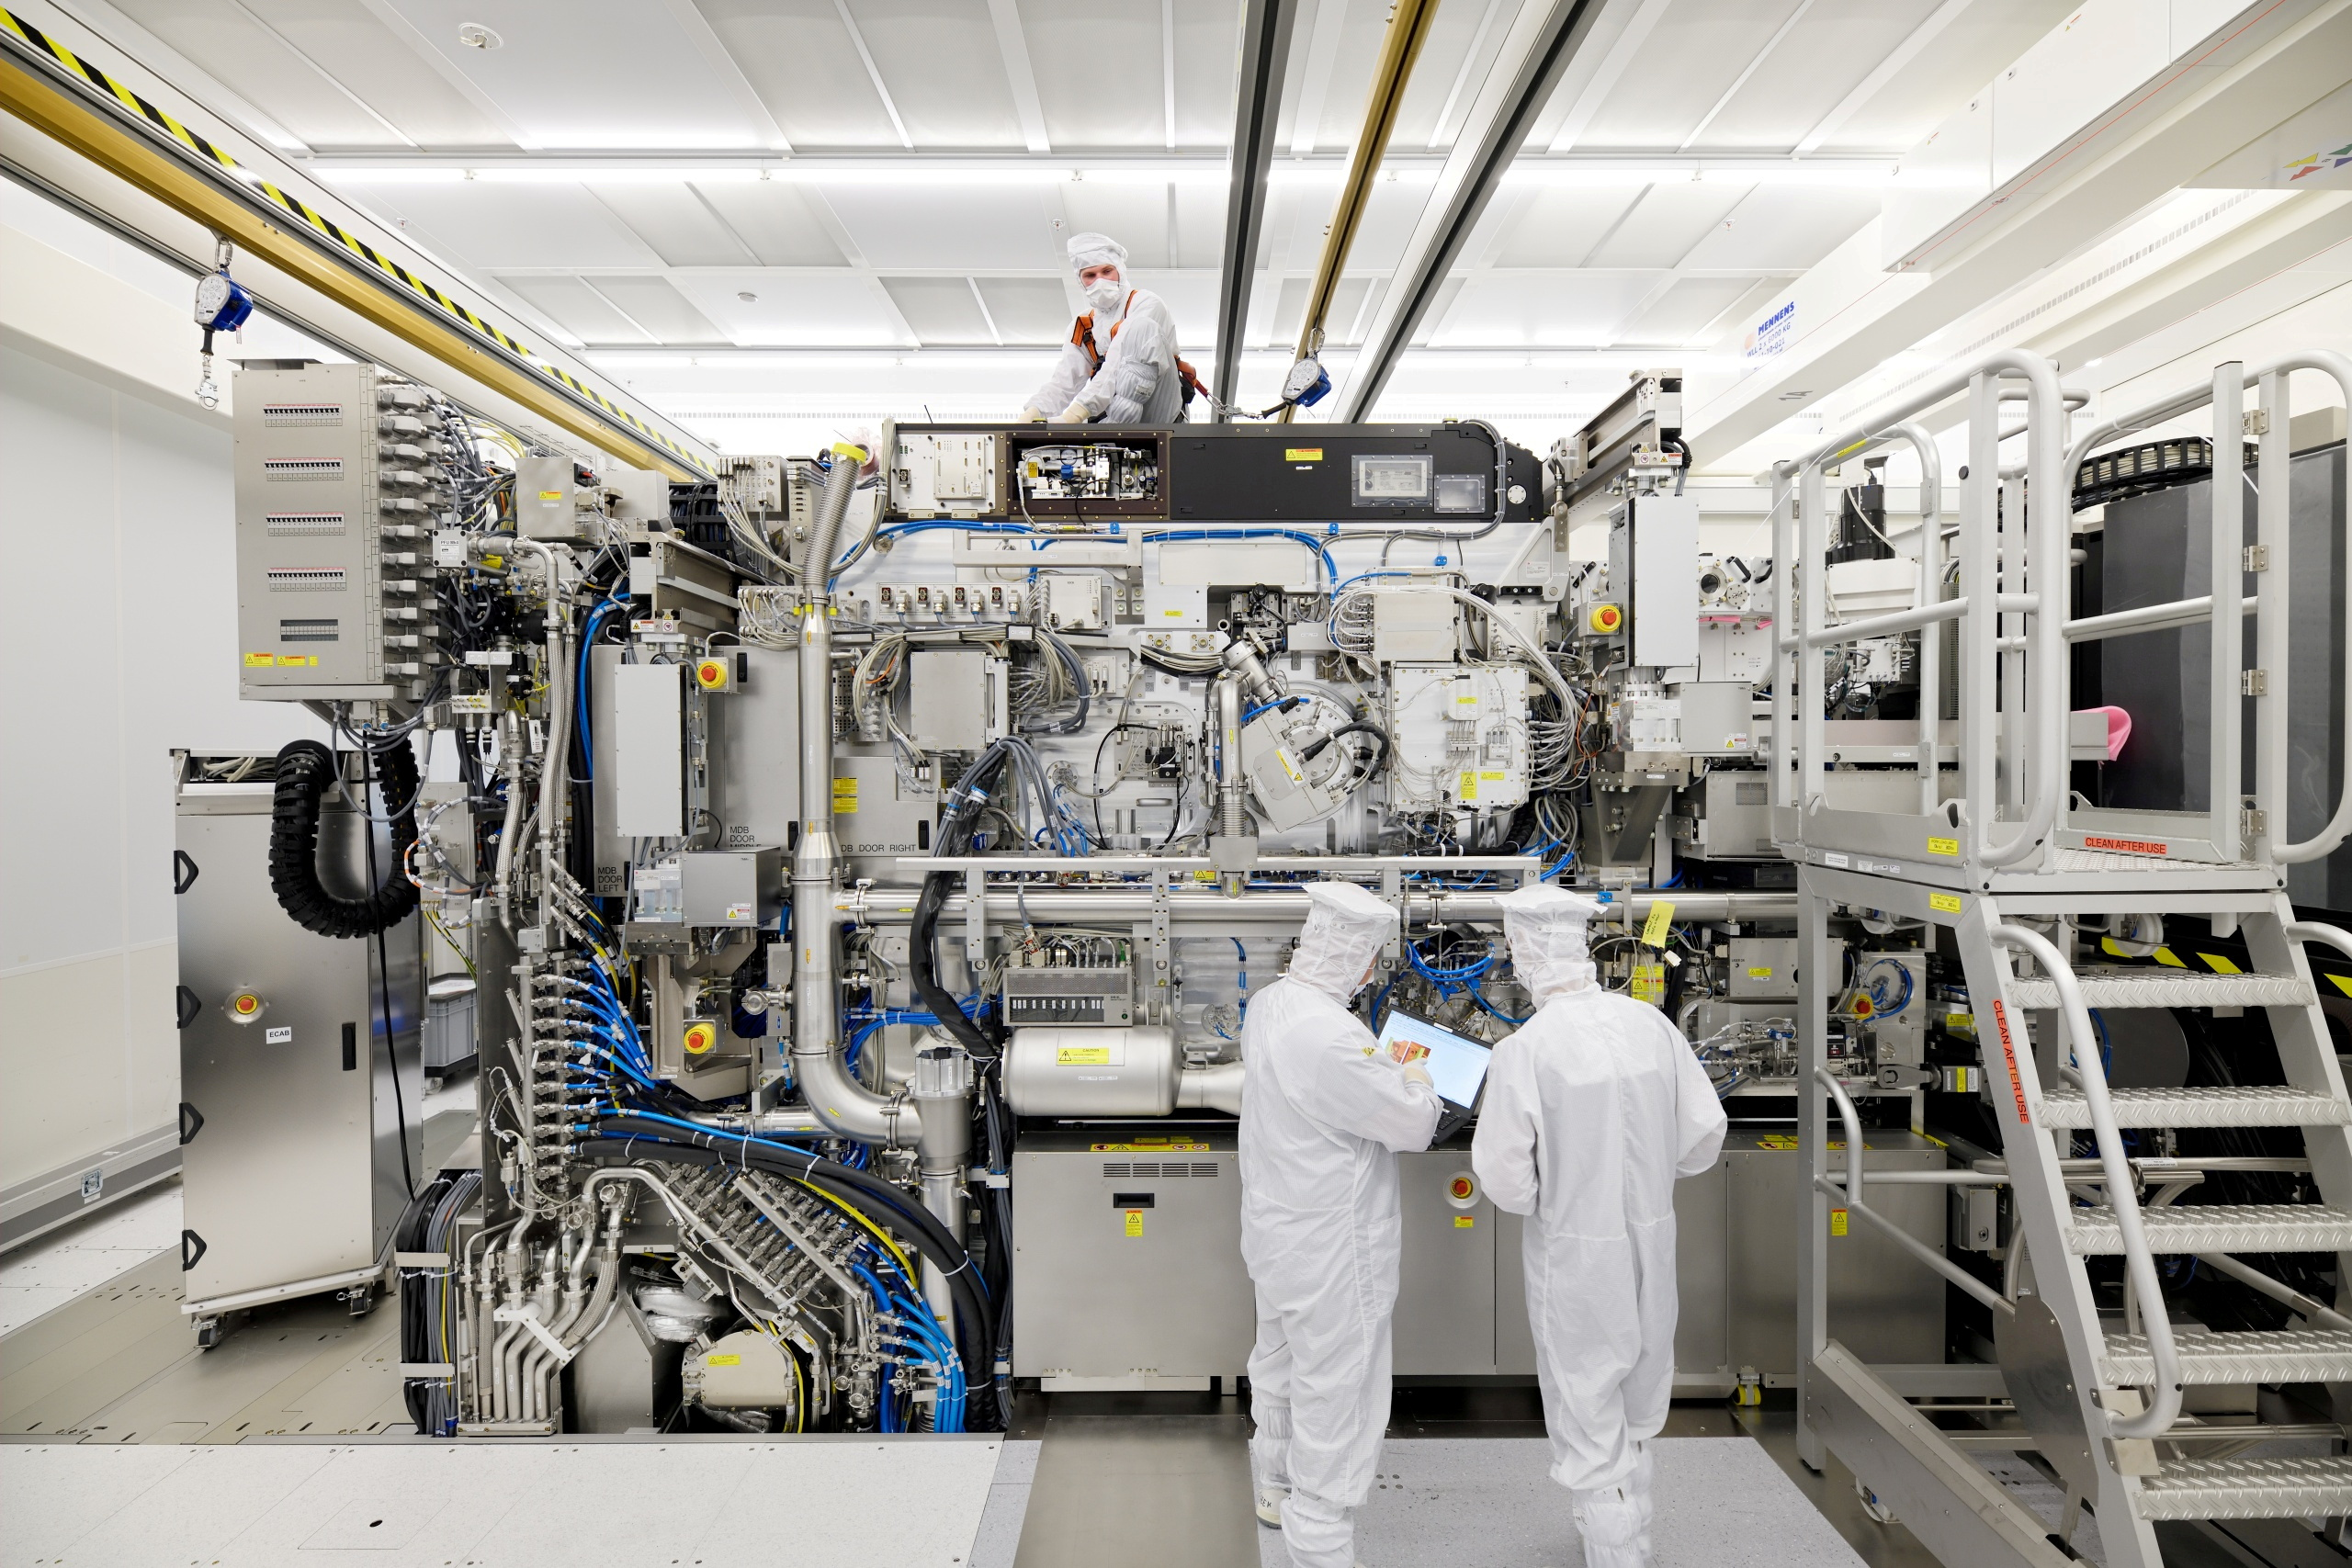 Employees are seen working on the final assembly of ASML's TWINSCAN NXE:3400B semiconductor lithography tool with its panels removed, in Veldhoven, Netherlands, in this picture taken April 4, 2019. Bart van Overbeeke Fotografie/ASML/Handout via REUTERS /File Photo